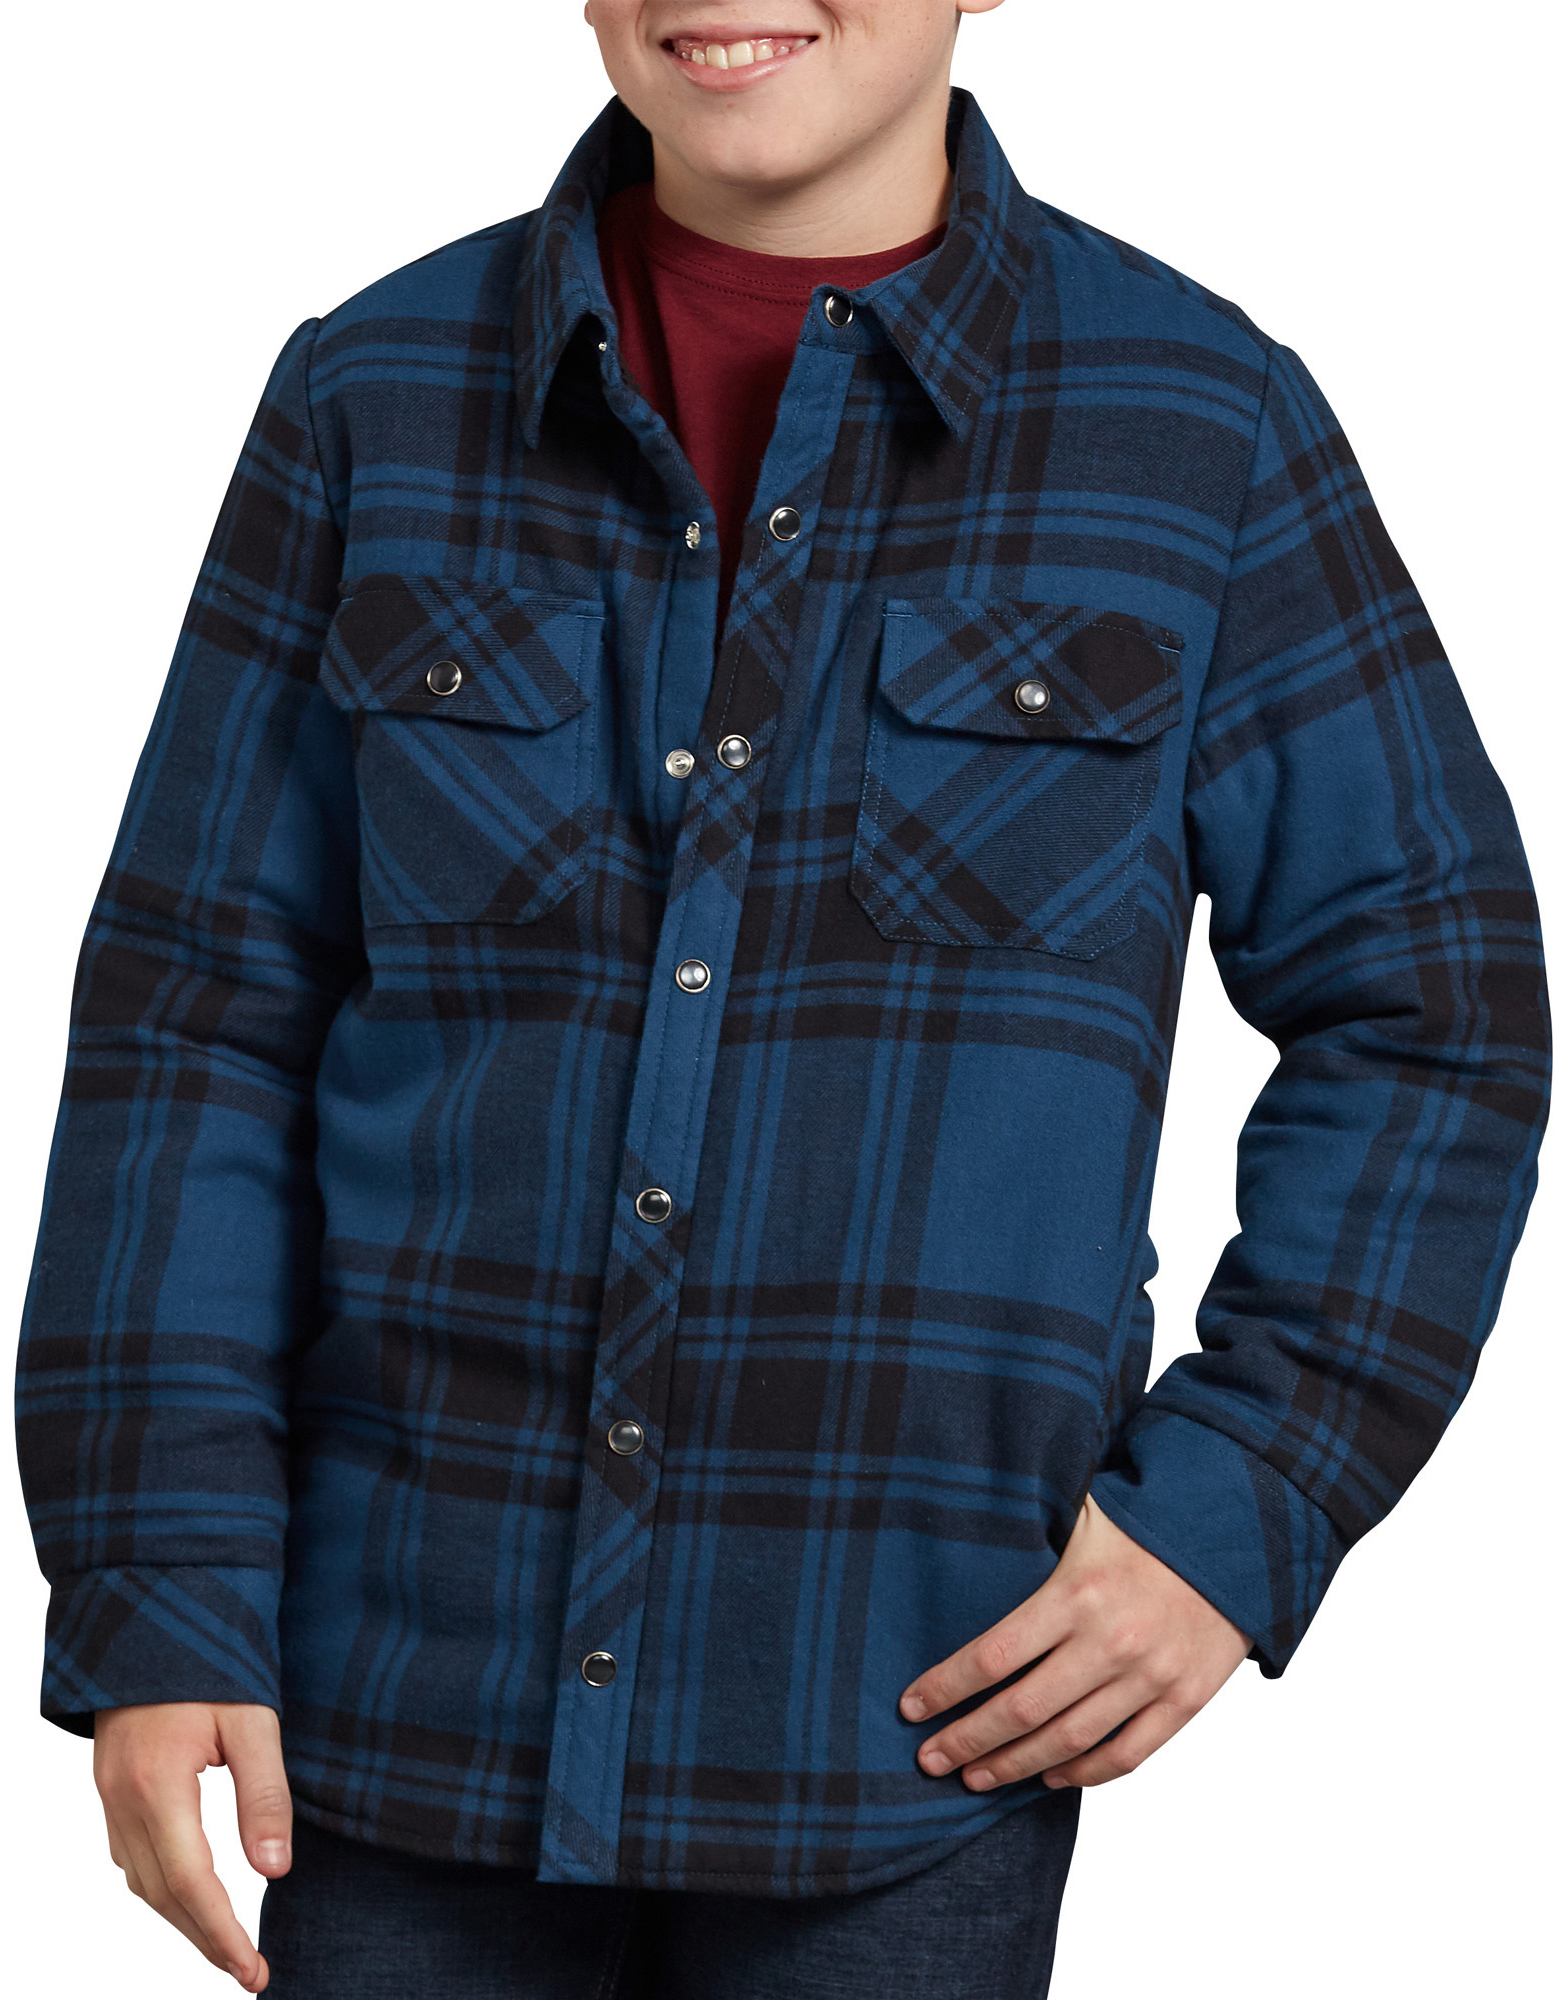 Boys' Flannel Shirt Jacket - Blue Black Plaid (PUE)